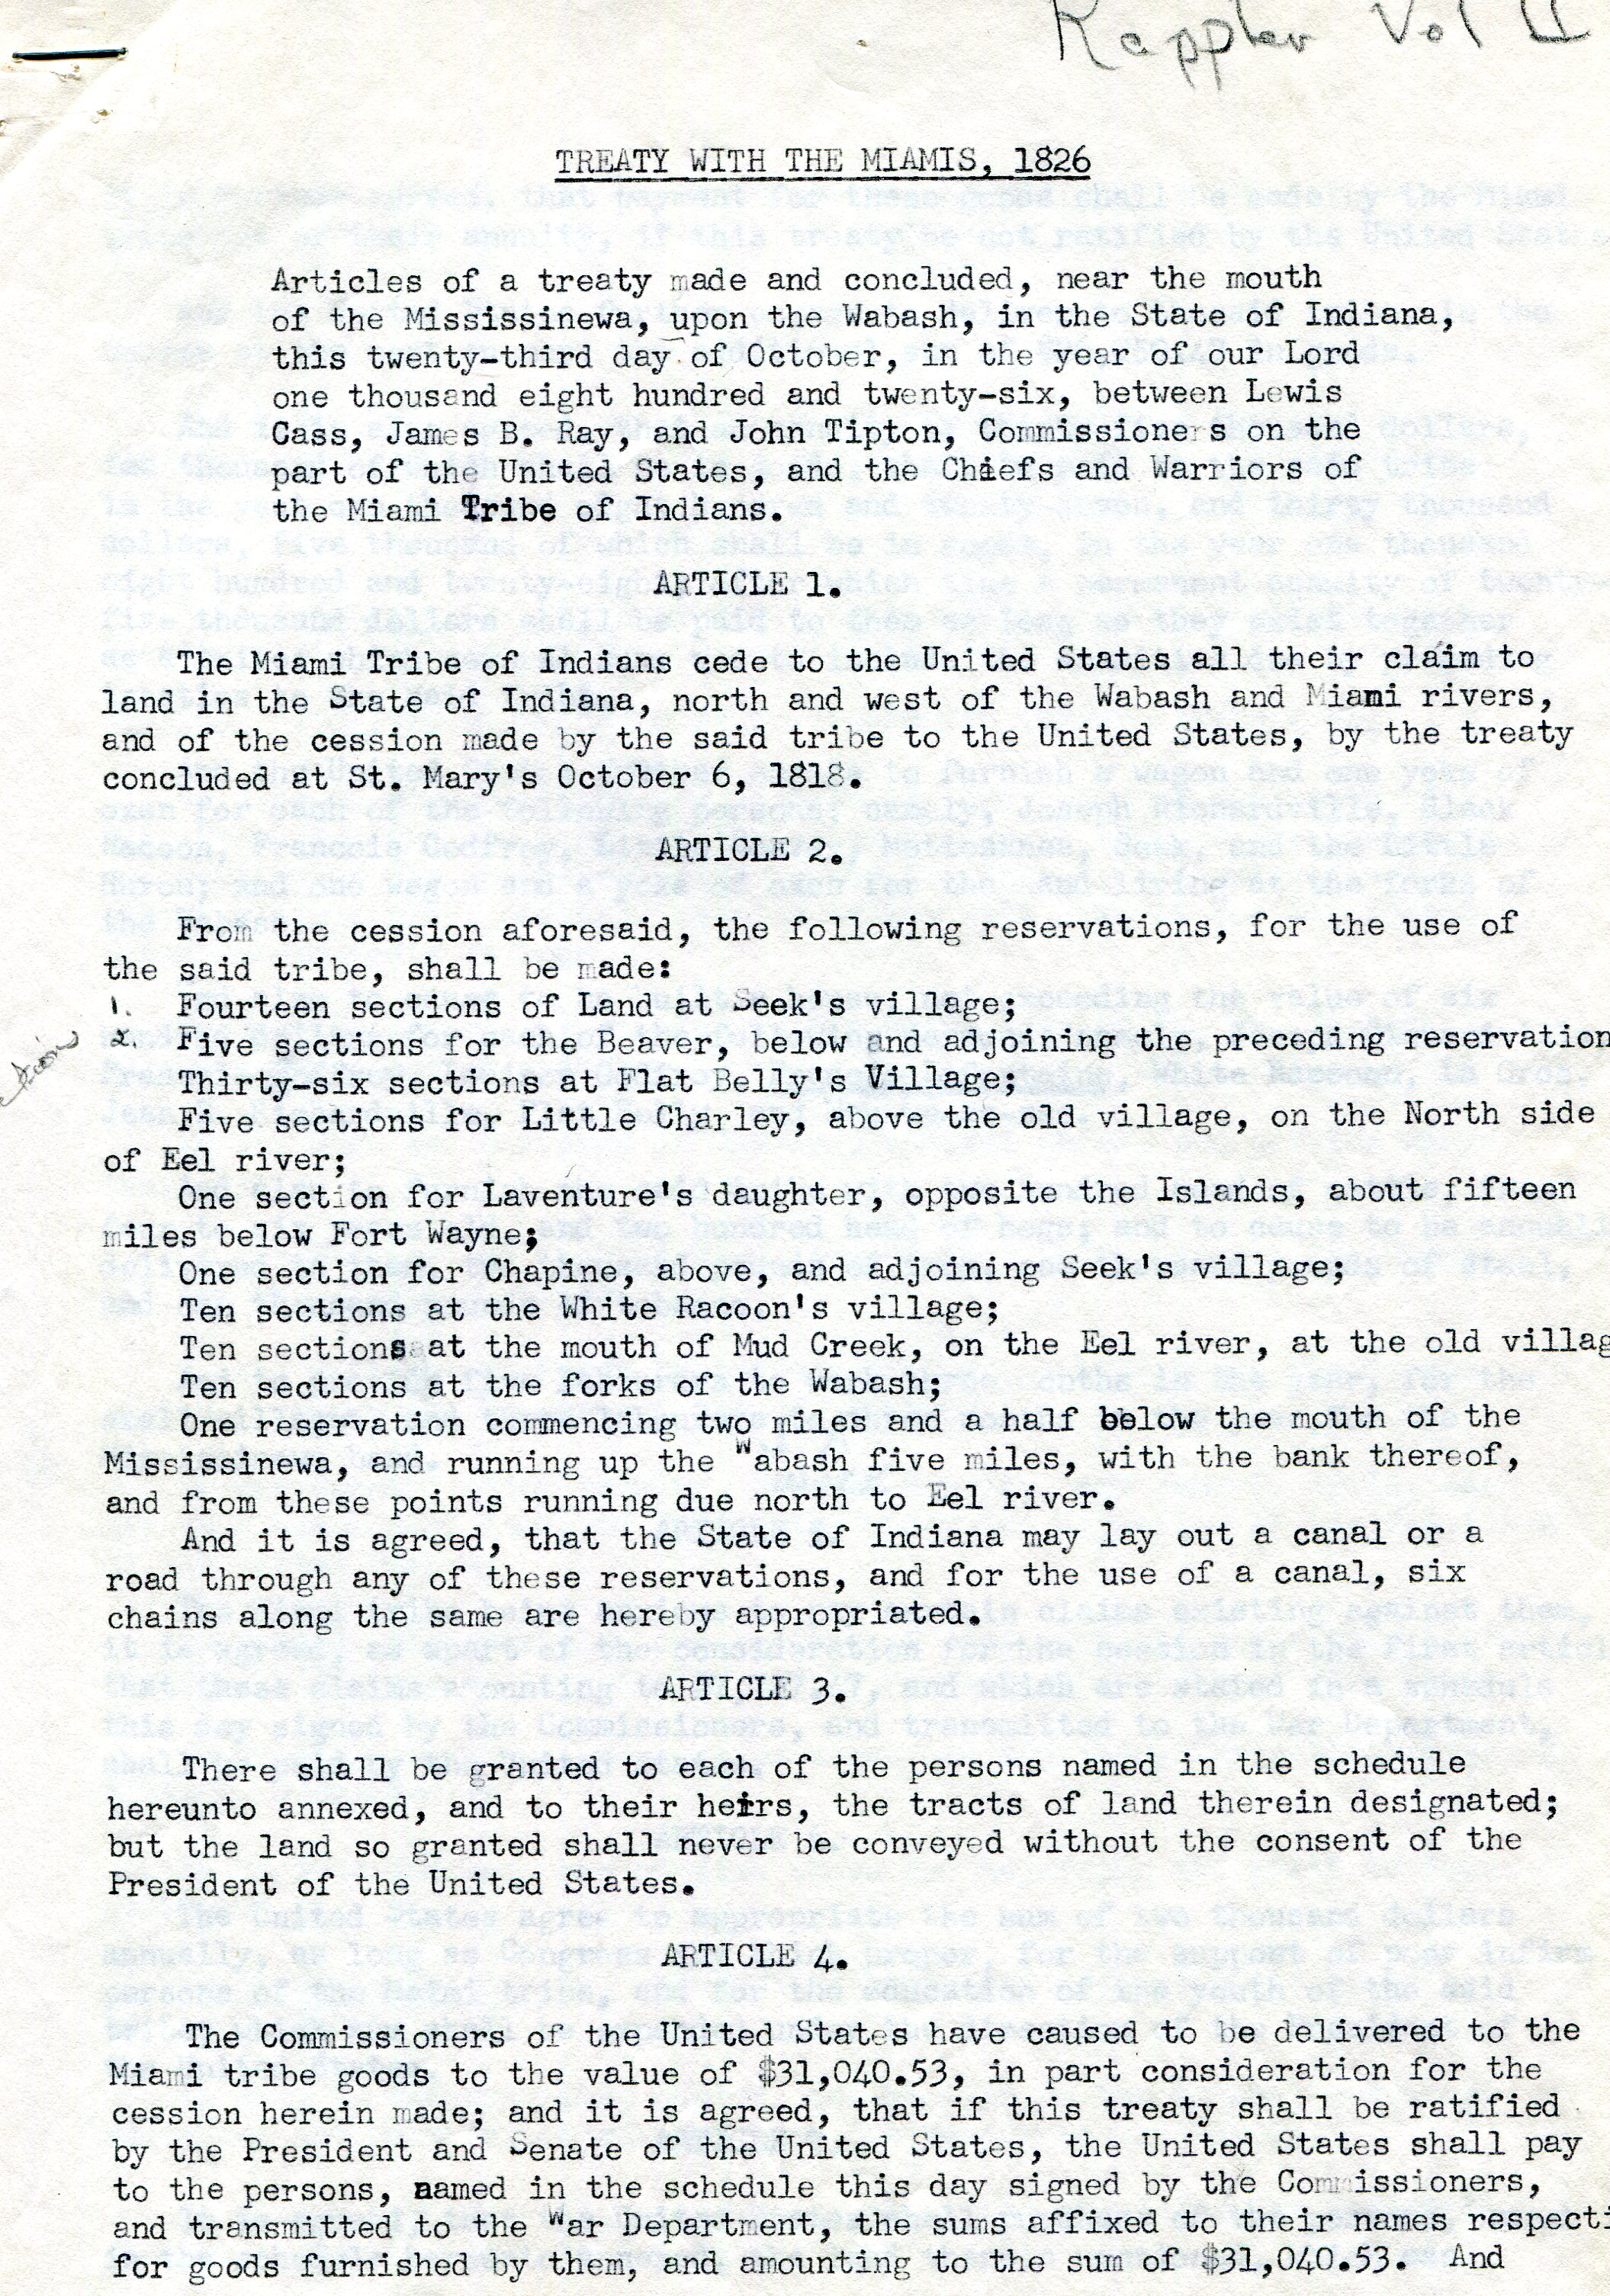 Page one of the Treaty of Miami 1826. The Treaty discusses the terms in which the Miami Nation would cede their lands North and West of the Wabash and Miami rivers to the federal government.